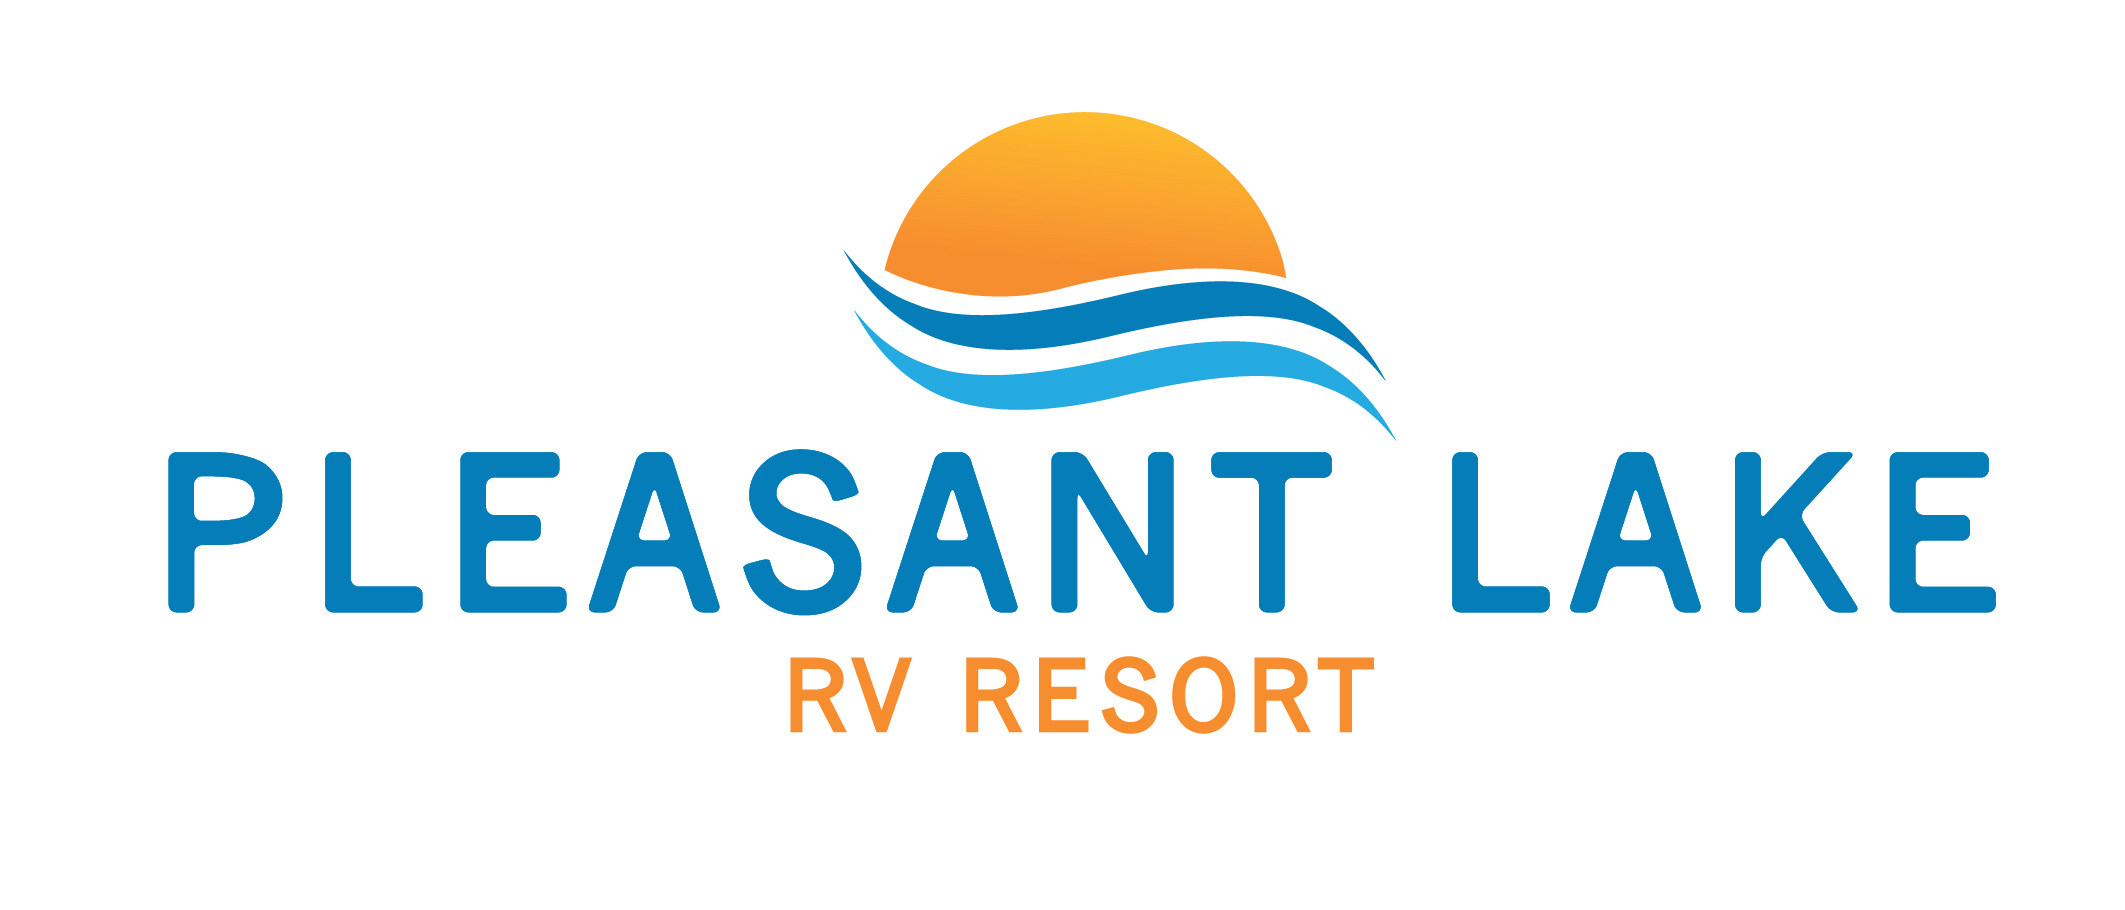 Pleasant Lake RV Resort logo